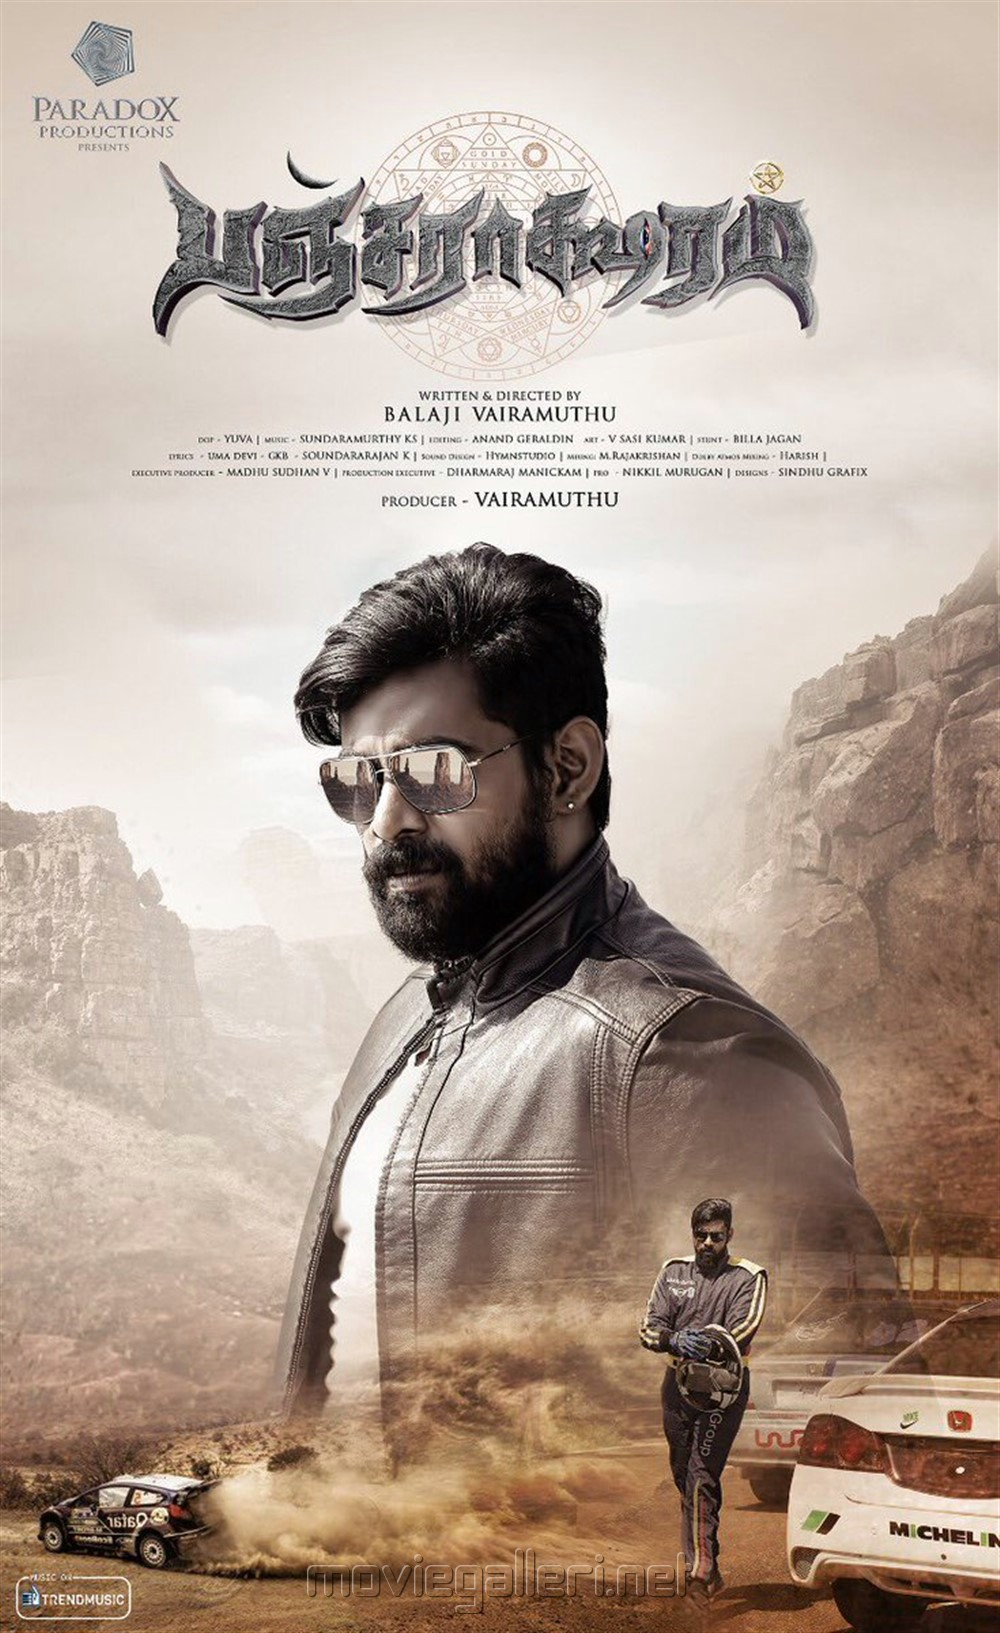 actor-ashwin-jerome-in-pancharaaksharam-movie-characters-posters